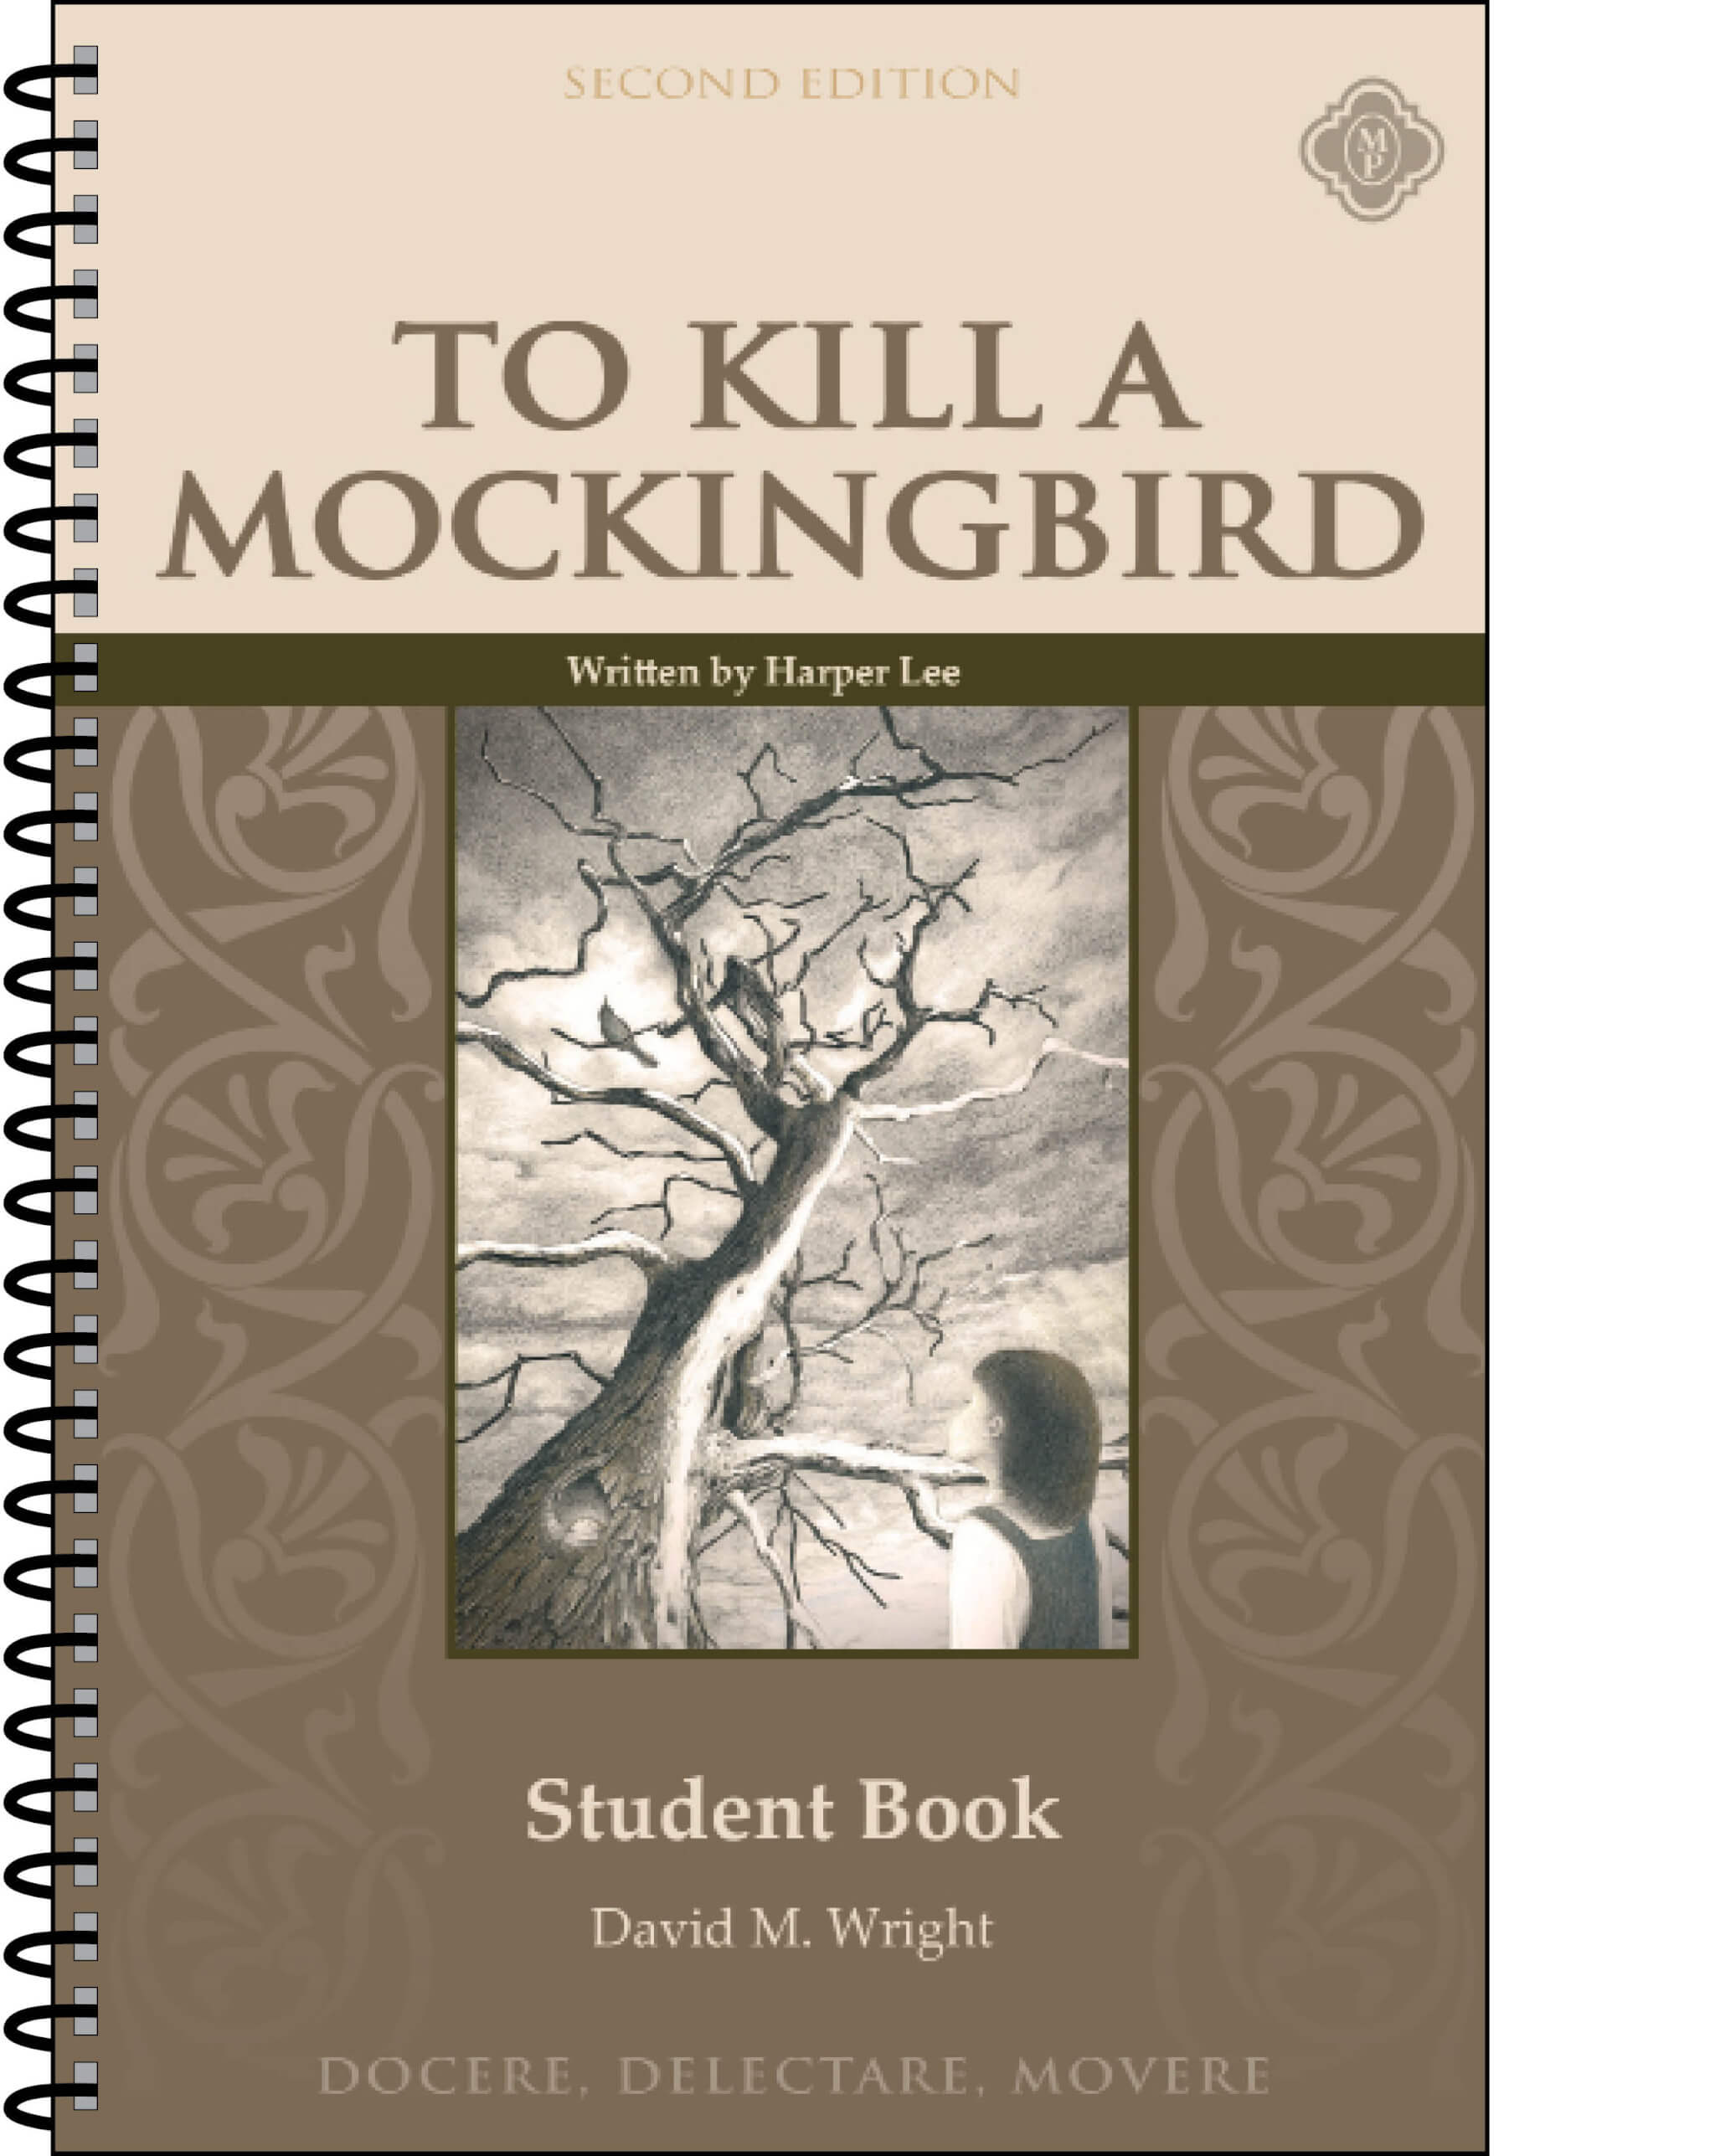 an analysis of the novel to kill a mockingbird by harper lees This essay explores harper lee's novel to kill a mockingbird, focusing on the  social issues addressed it gives a plot summary of the novel.